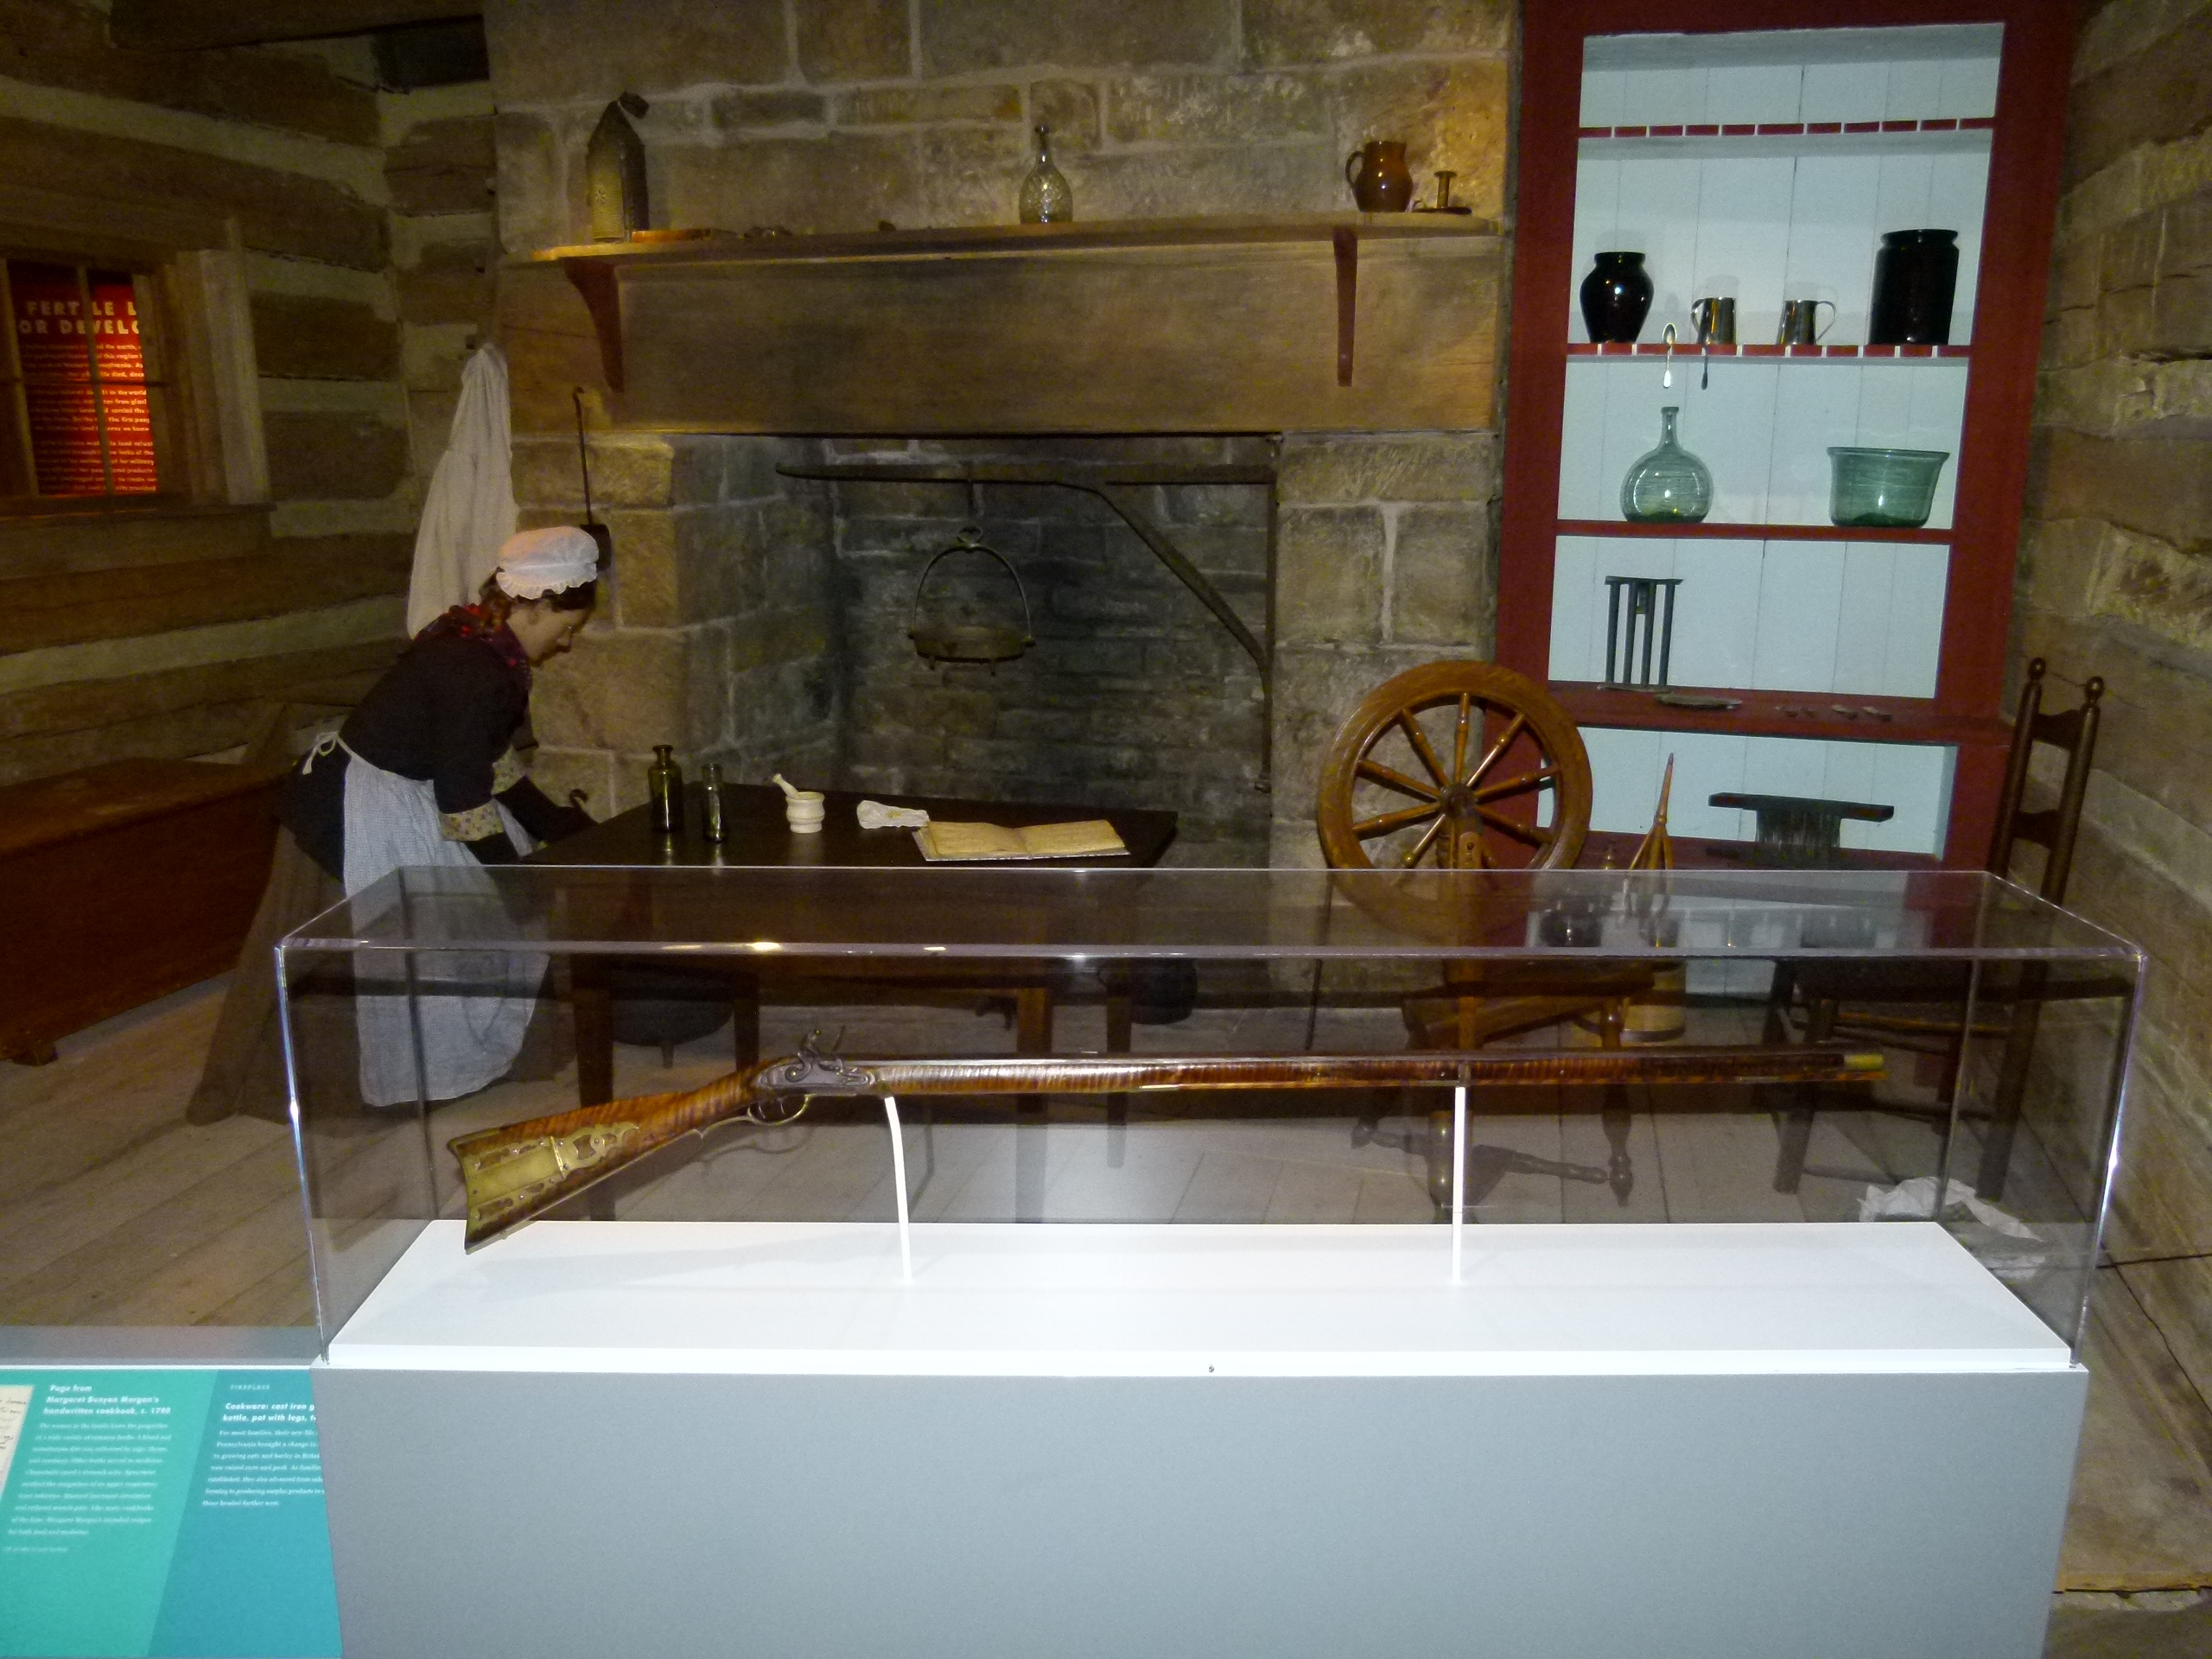 An early American home interior with a hearth, spinning wheel, and long gun.